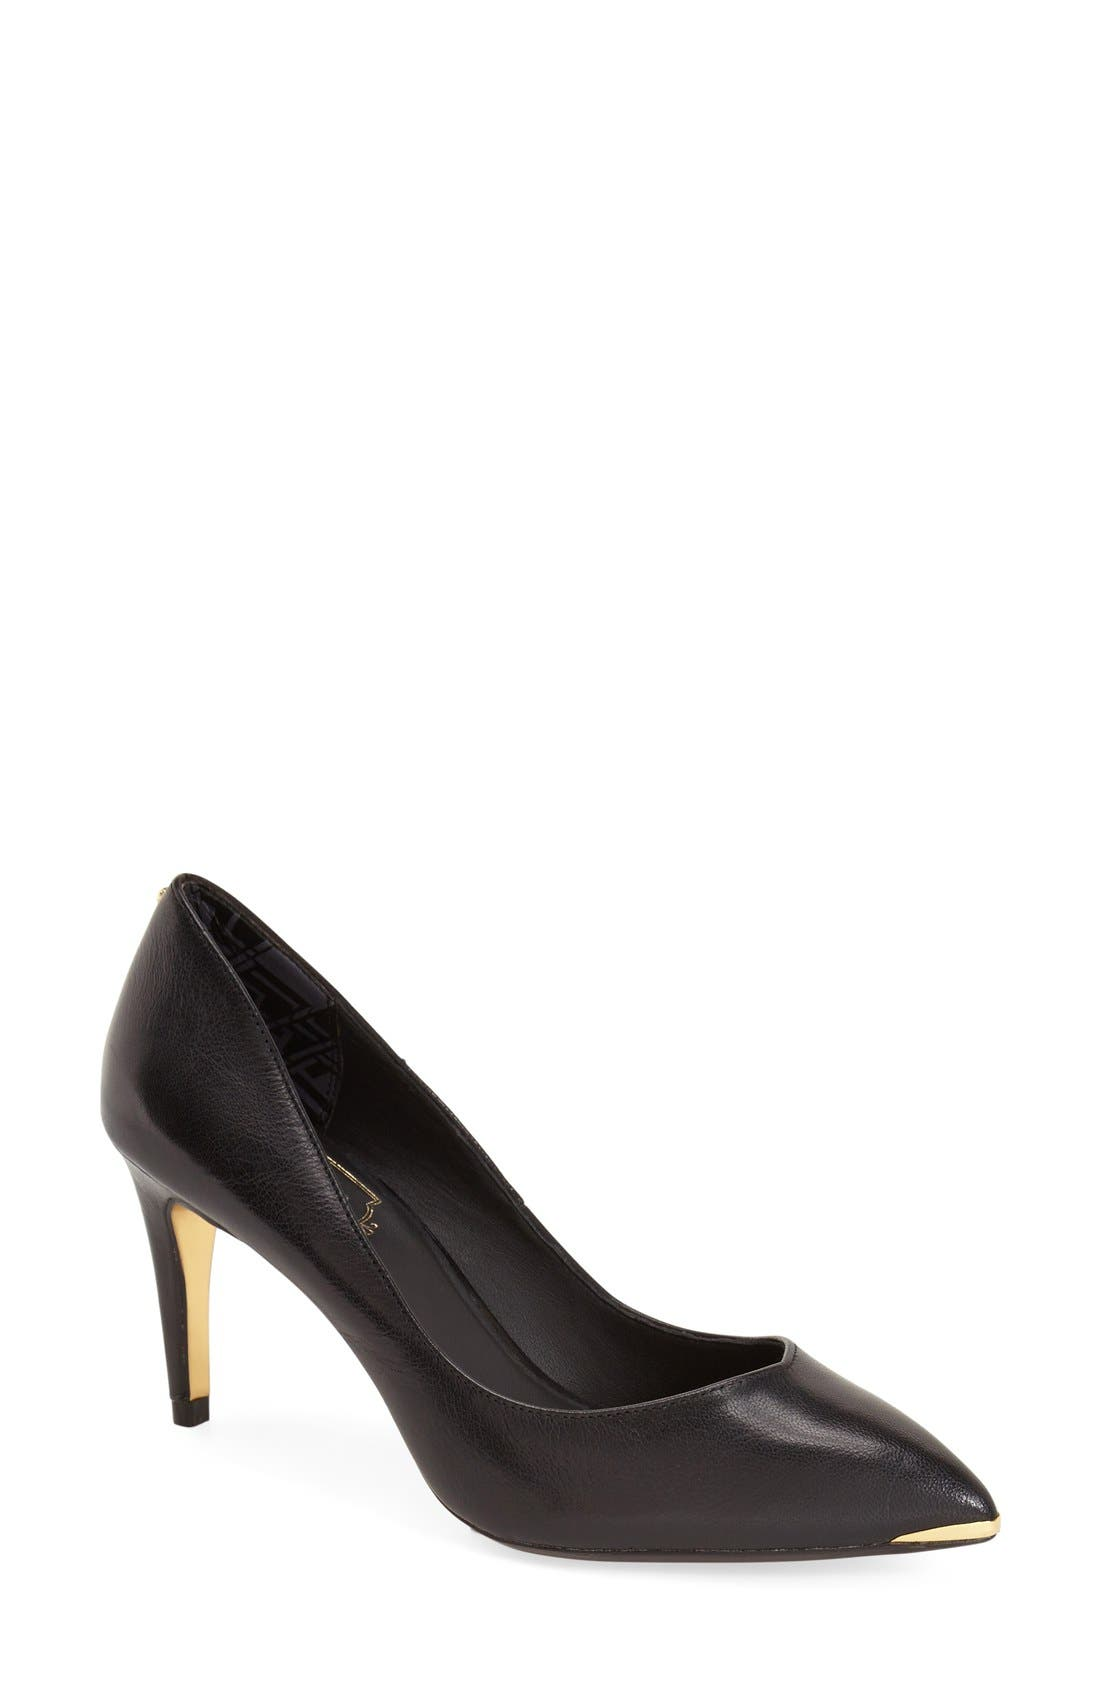 'Monirra' Pointy Toe Pump,                         Main,                         color, 001